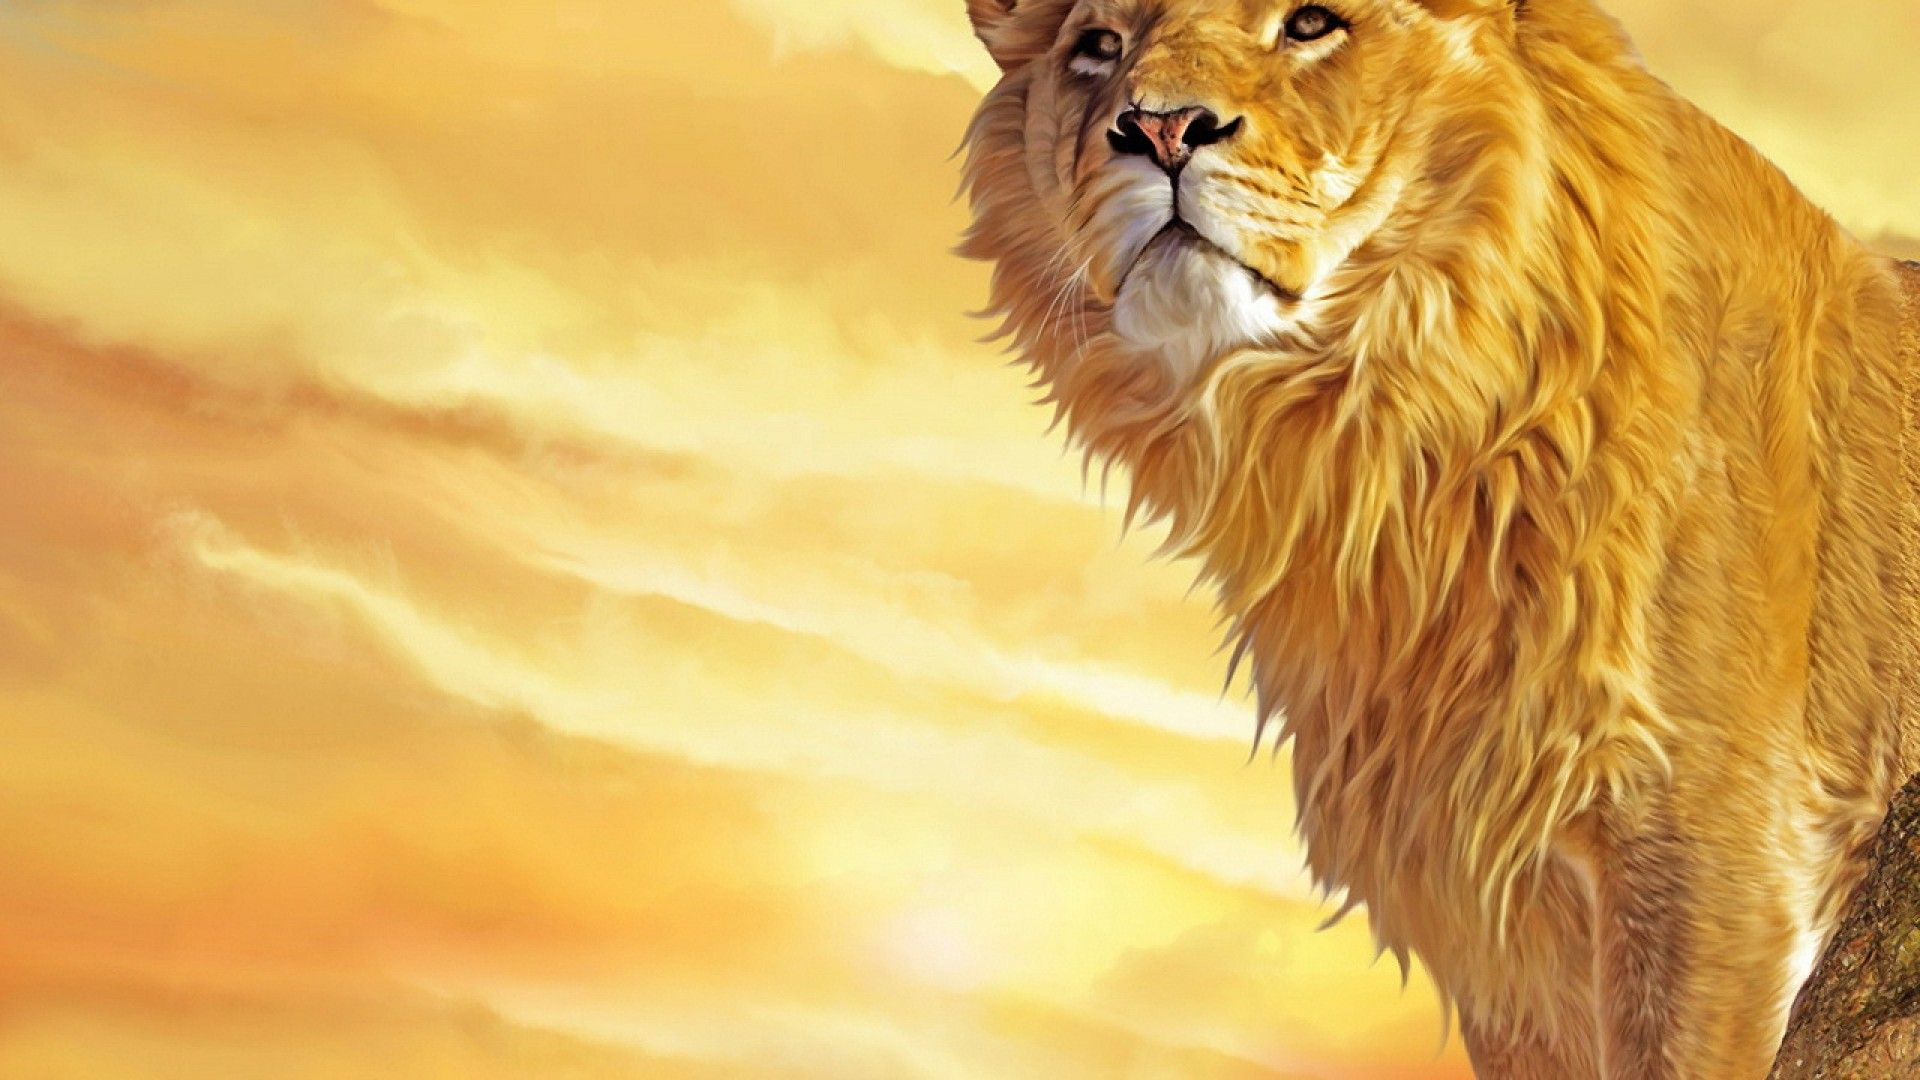 lion wallpapers free download